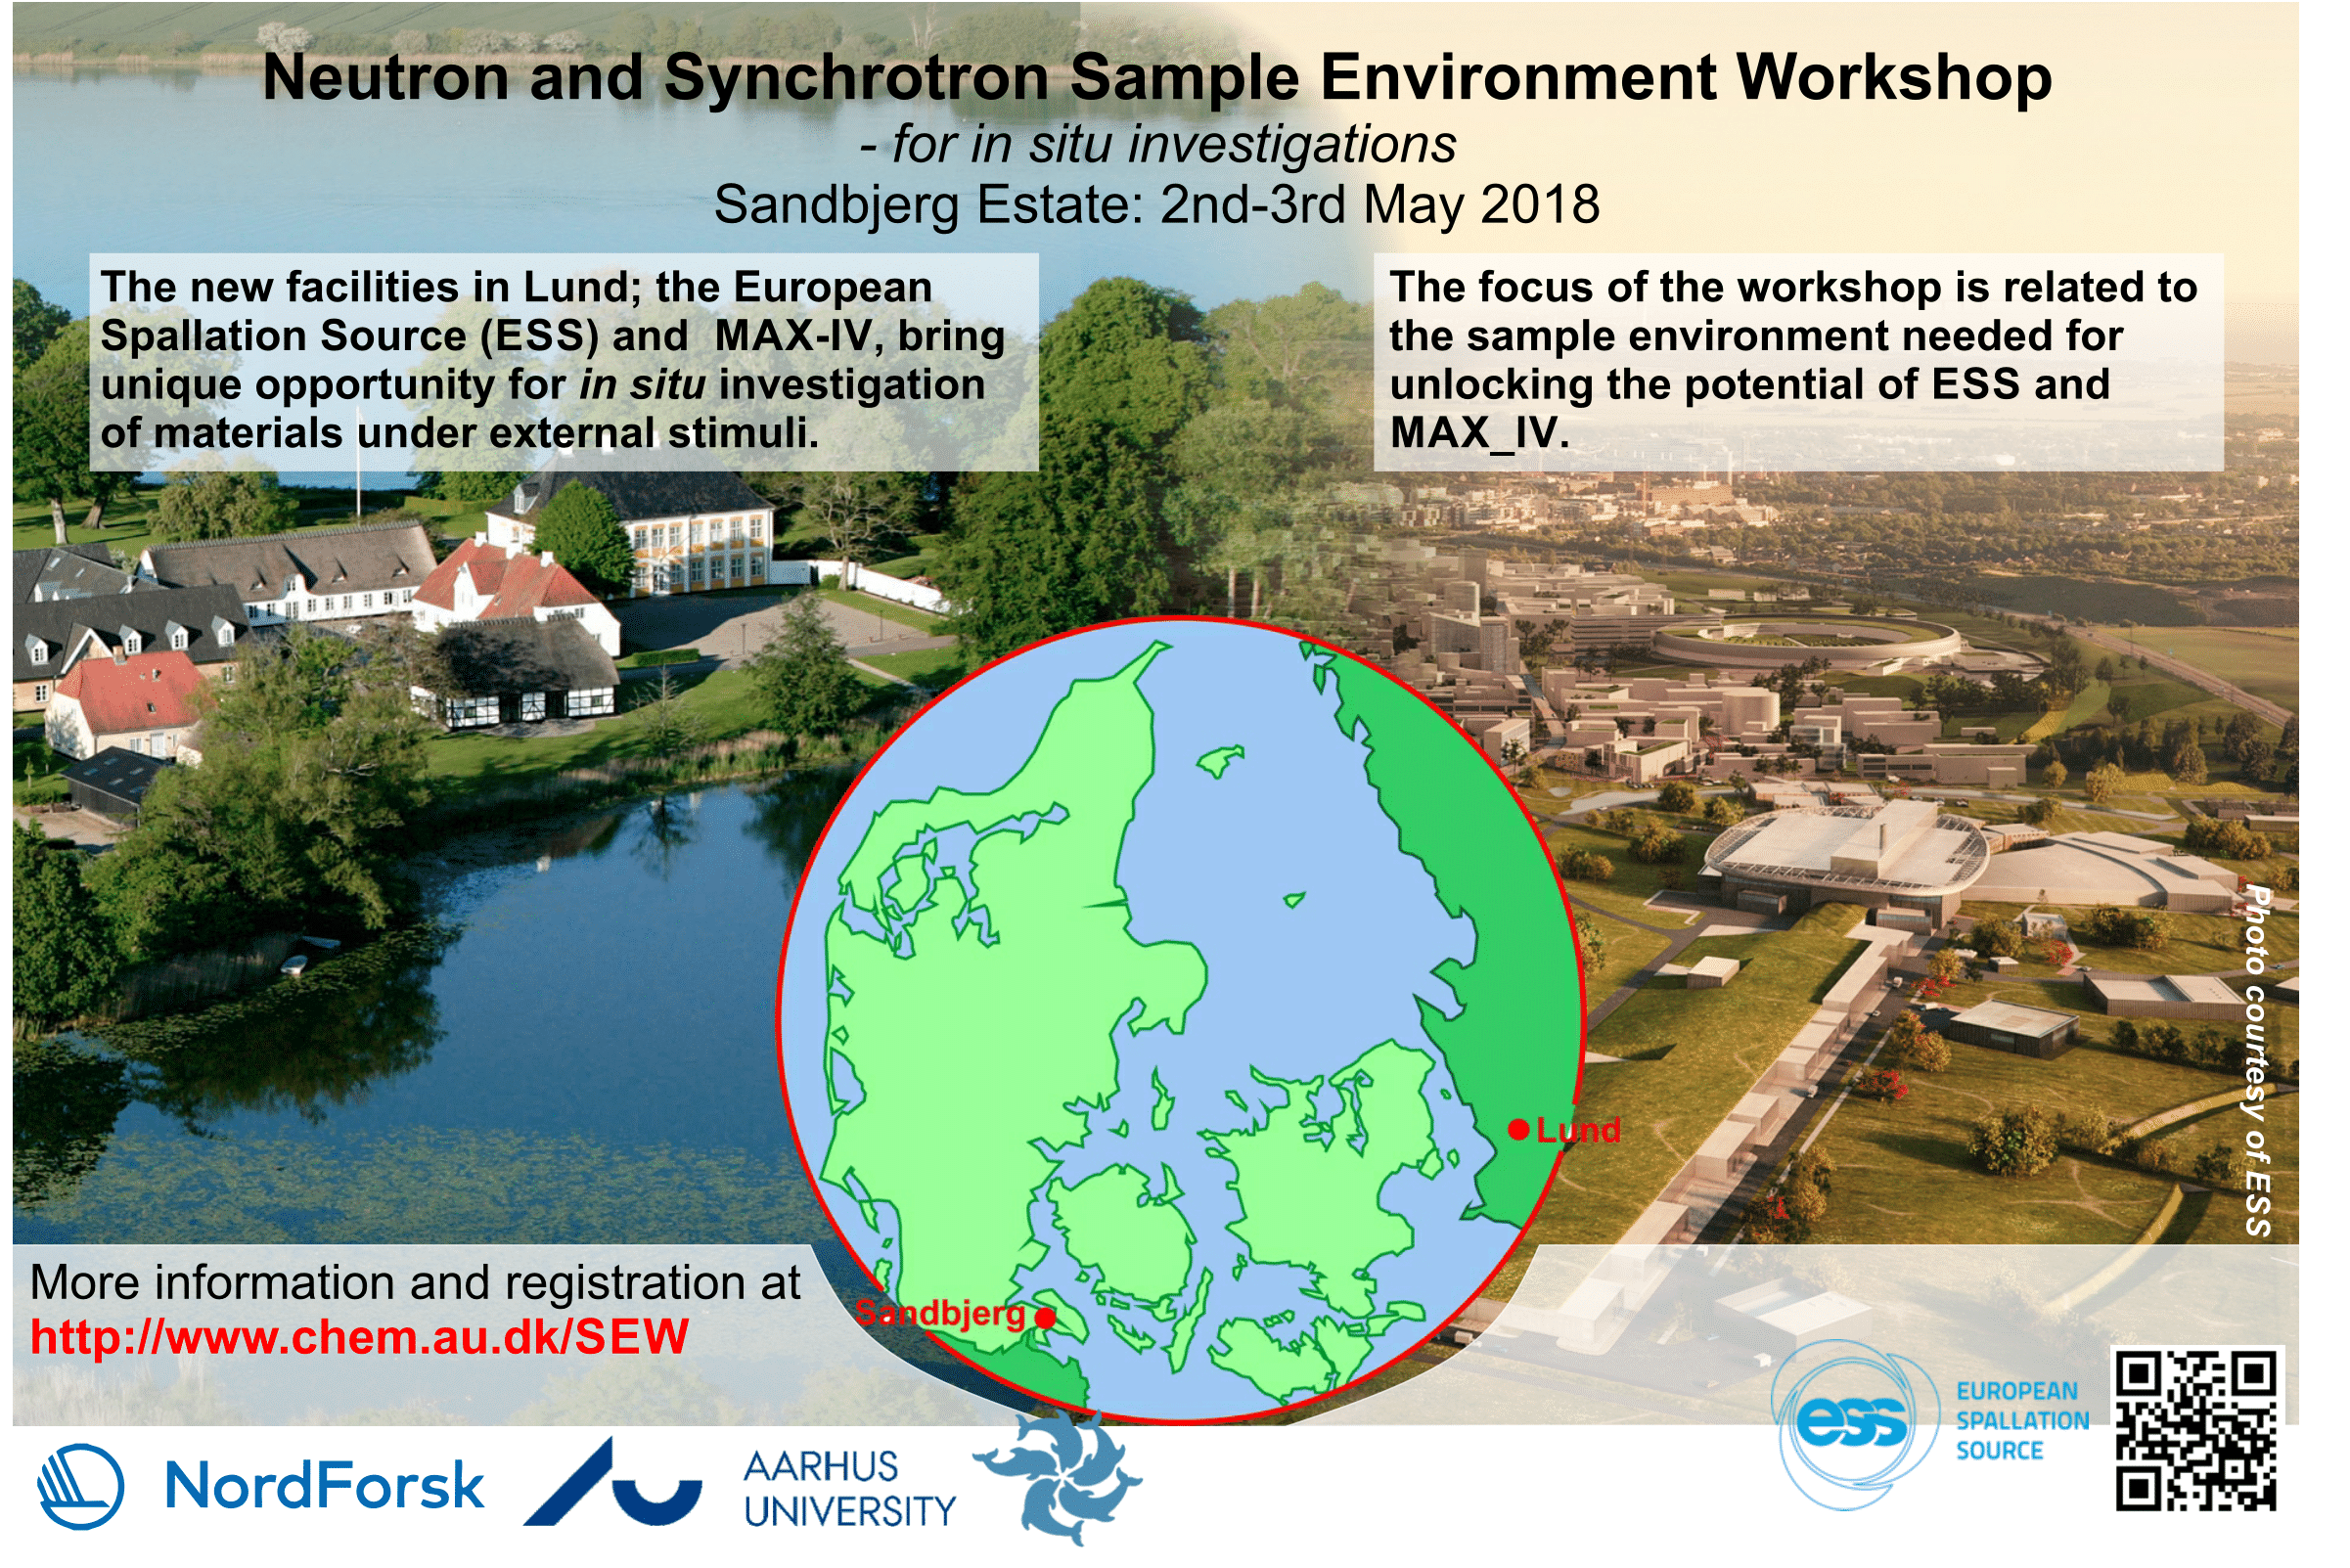 Neutron and Synchrotron Sample Environment Workshop